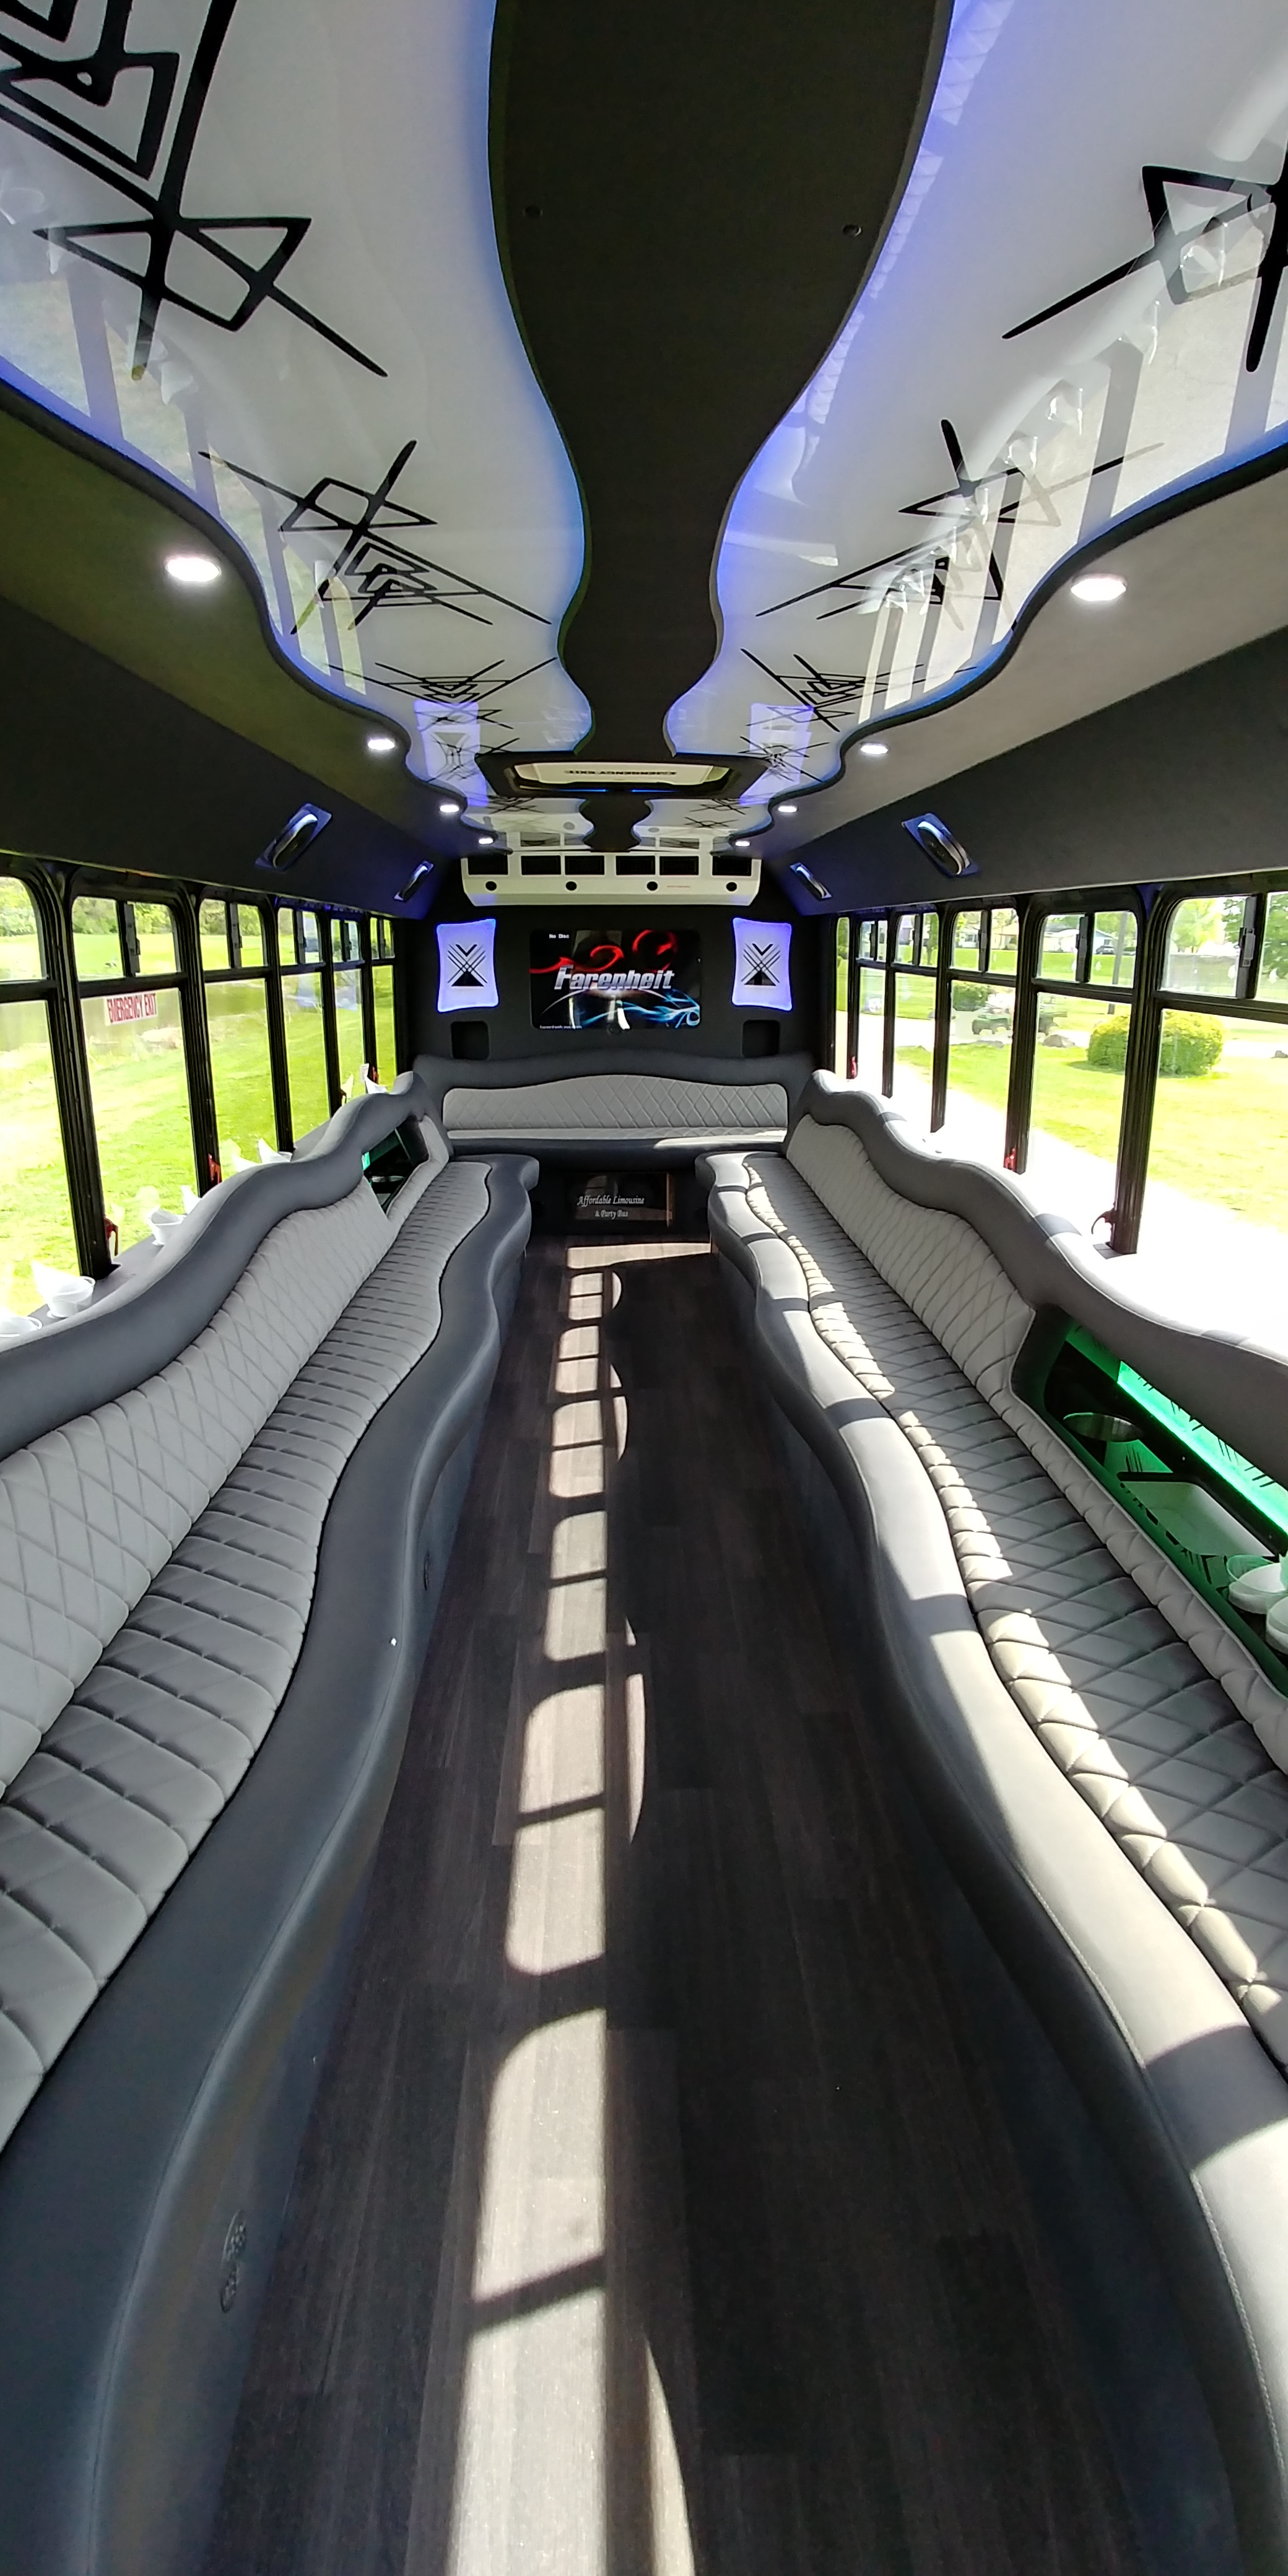 28 Passenger Luxury Limo Bus Interior 3